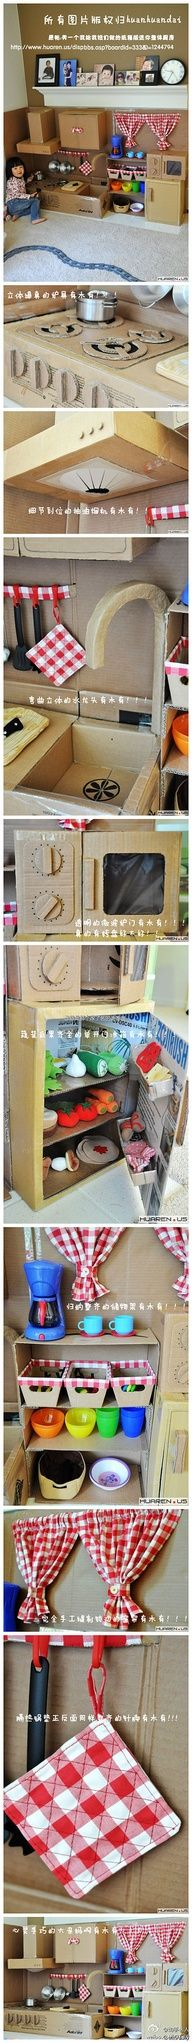 DIY cardboard kitchen I Love this! Though now the cardboard stove I made for my girl looks dinky by comparison. Cardboard Kitchen, Cardboard Toys, Diy And Crafts, Crafts For Kids, Paper Crafts, Diy Karton, Pretend Play Kitchen, Diy Toys, Diy For Kids